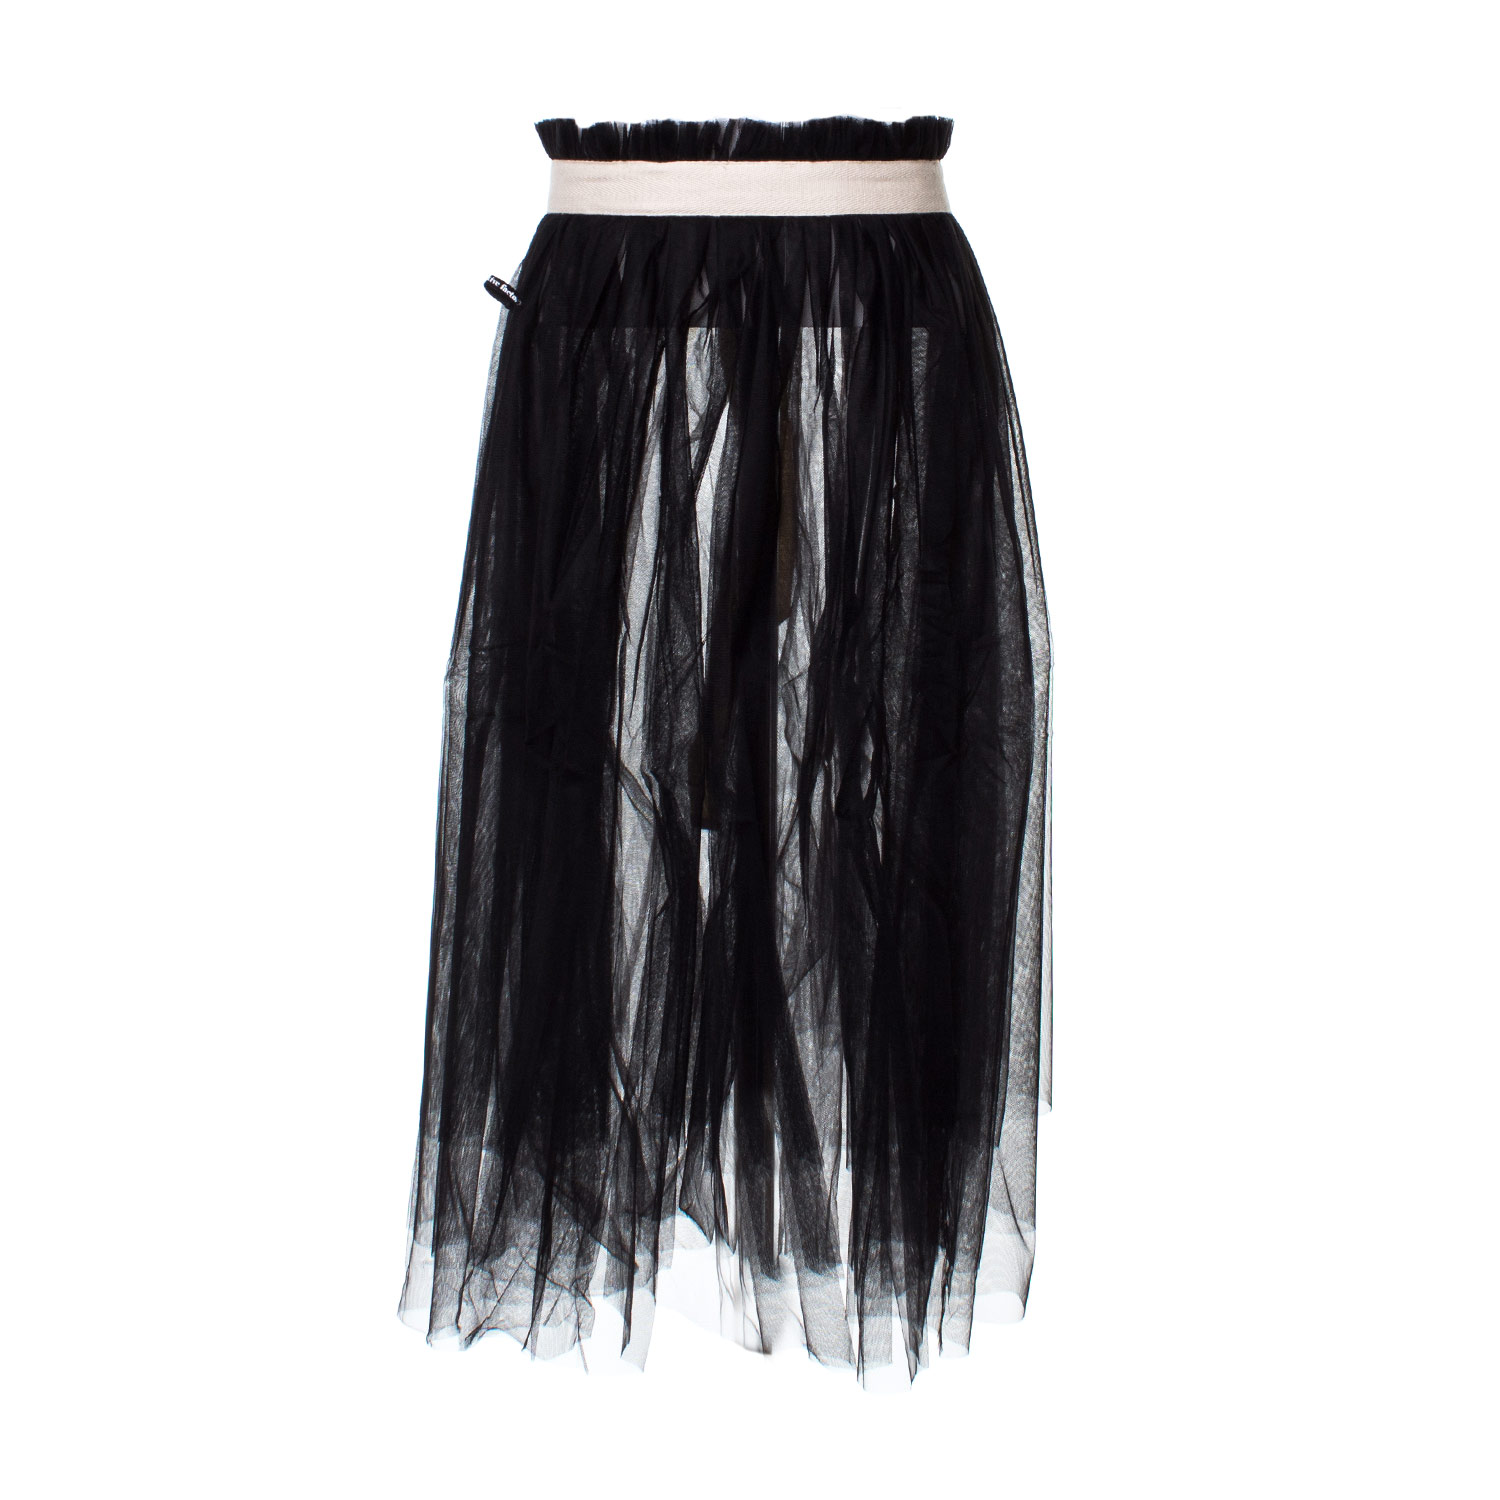 more photos 8d3ed b7610 Sottogonna Aperta In Tulle Nera Bambina Teen